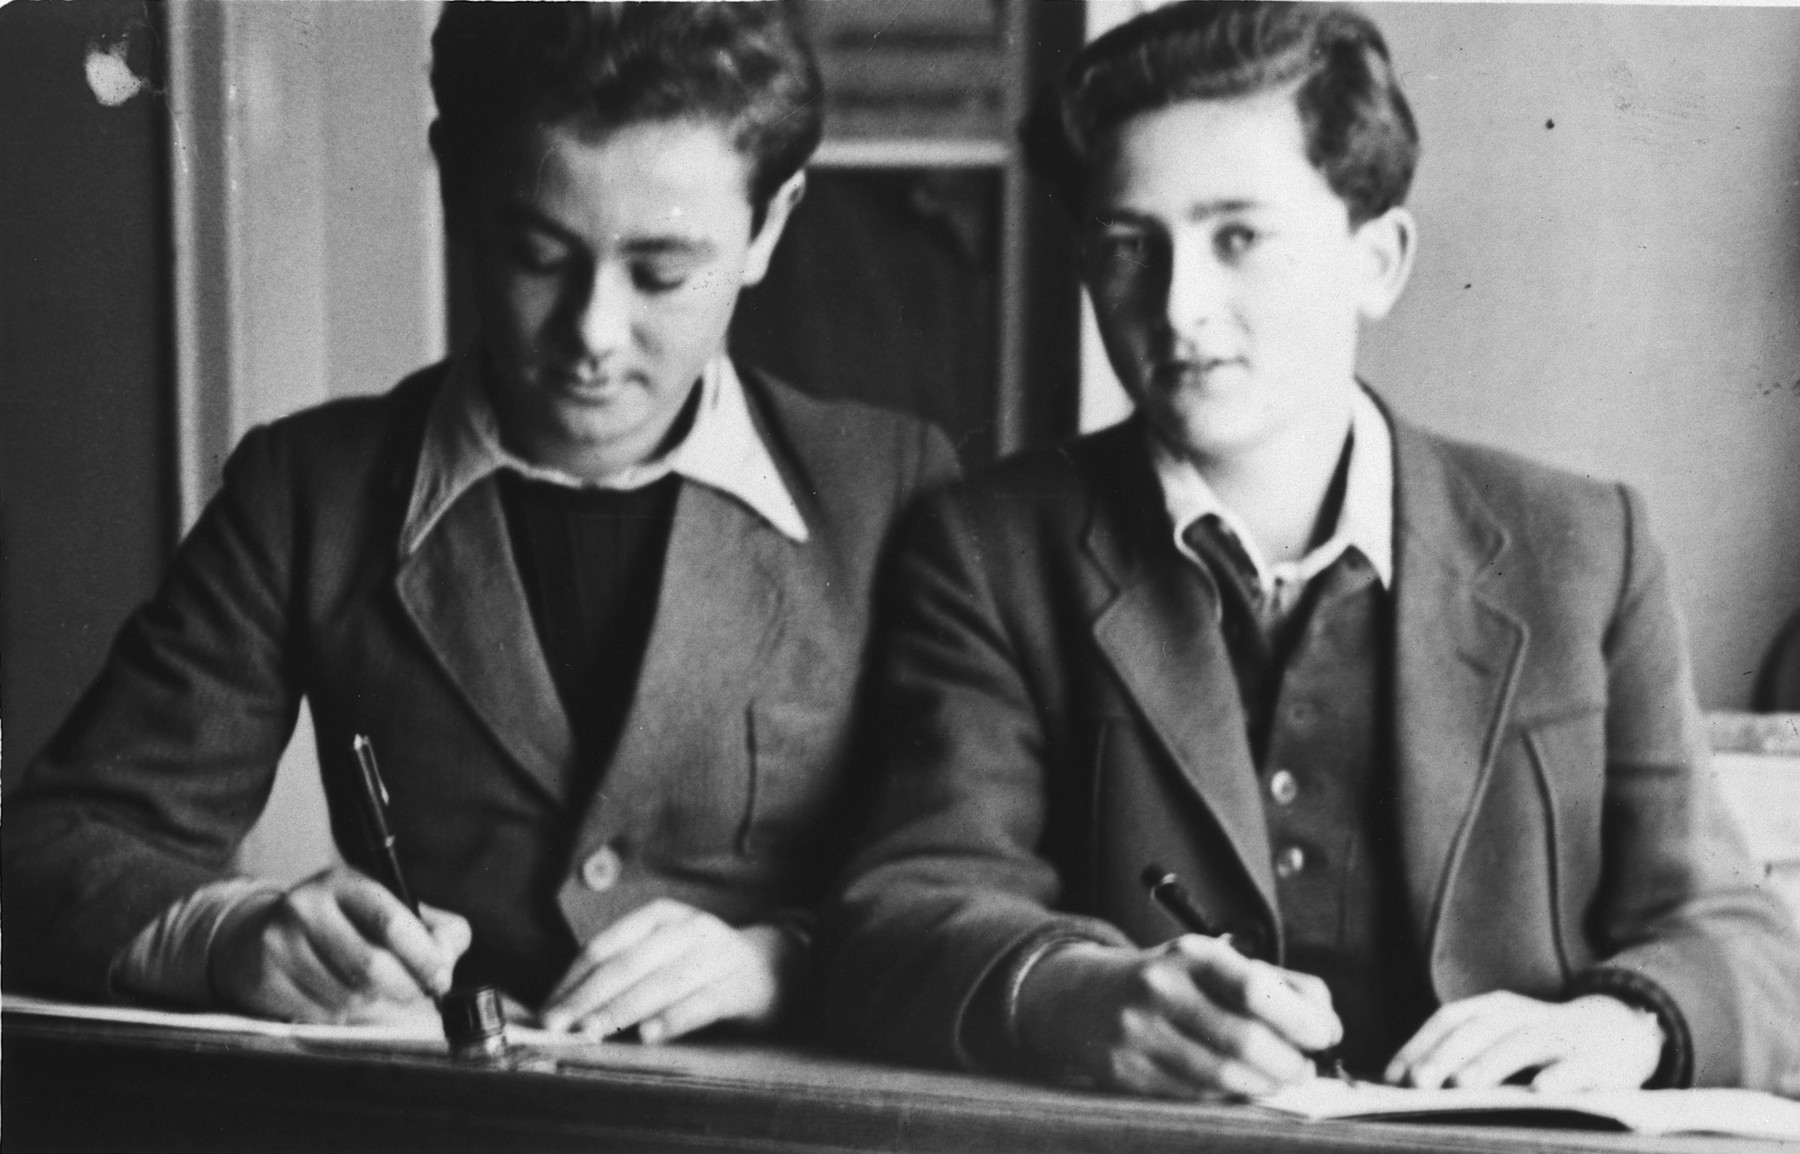 Two school boys work at their desk in the Stuttgart displaced persons camp.  Lova Warszawczyk is on the left; Jack Krampf is on the right.